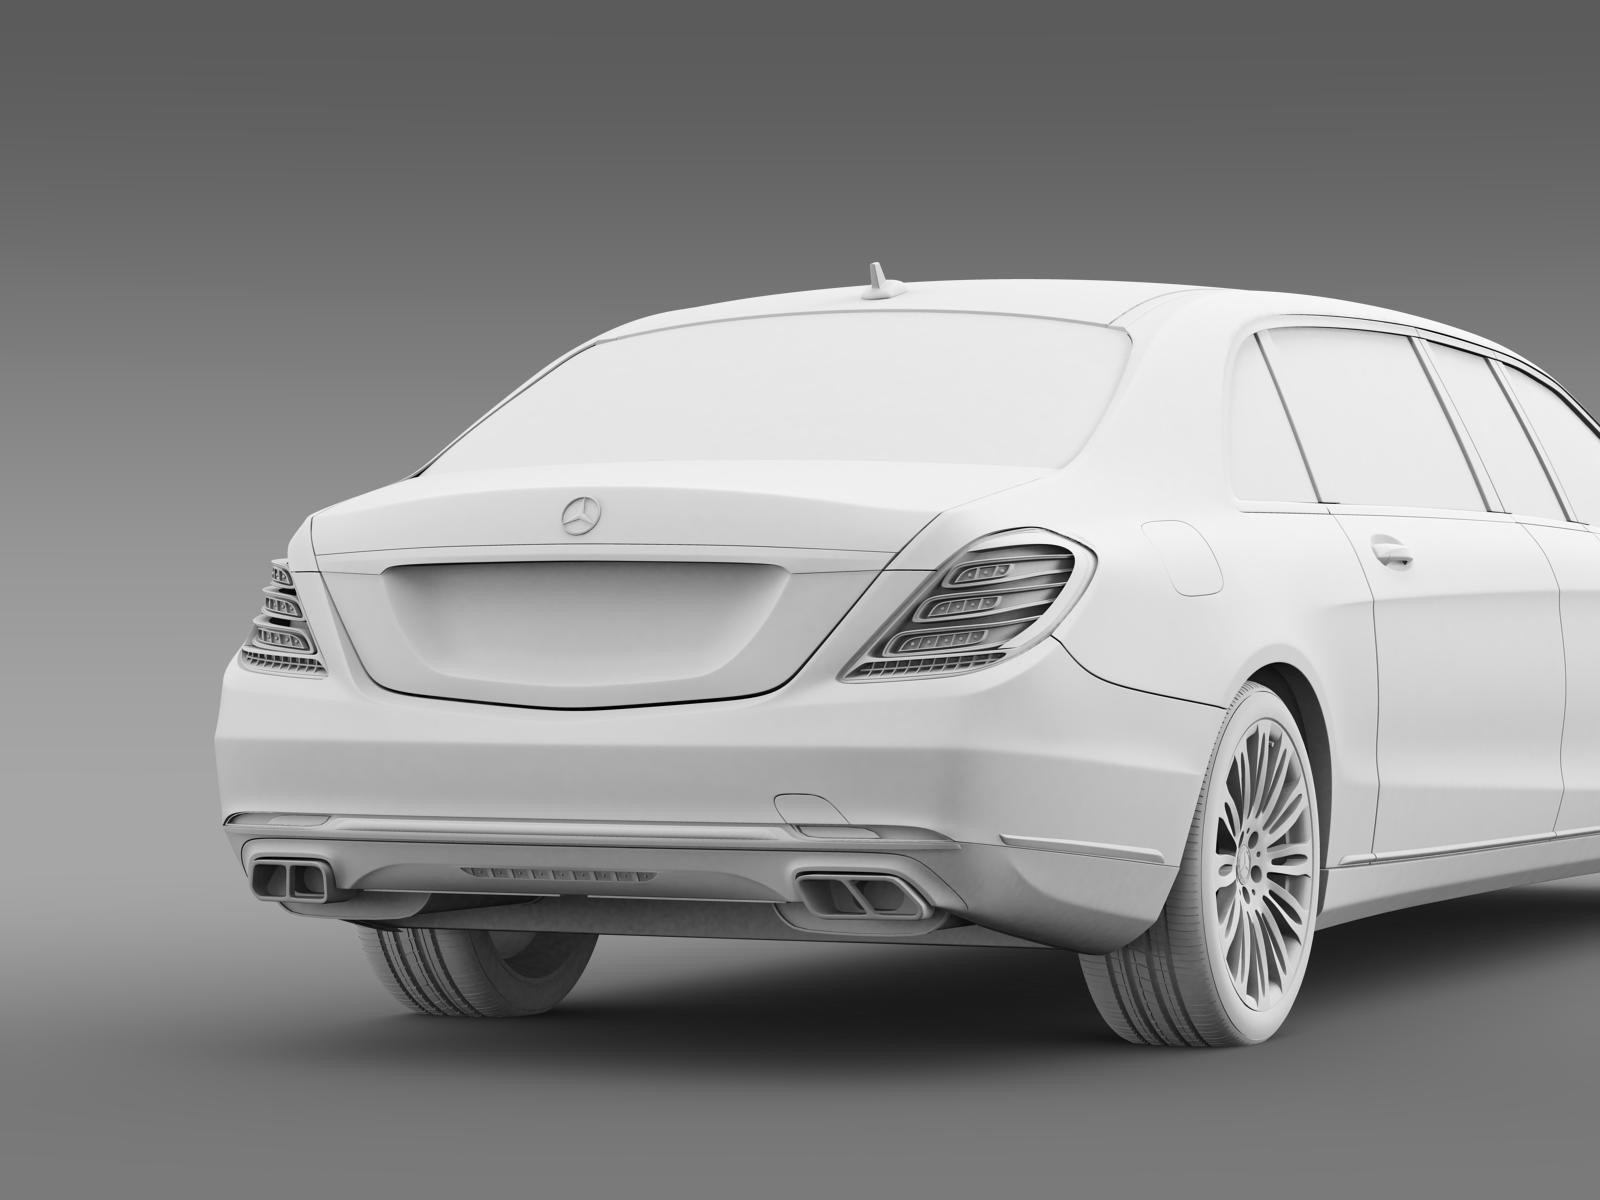 Mercedes benz s klasse pullman limousine 2016 by creator for Mercedes benz creator